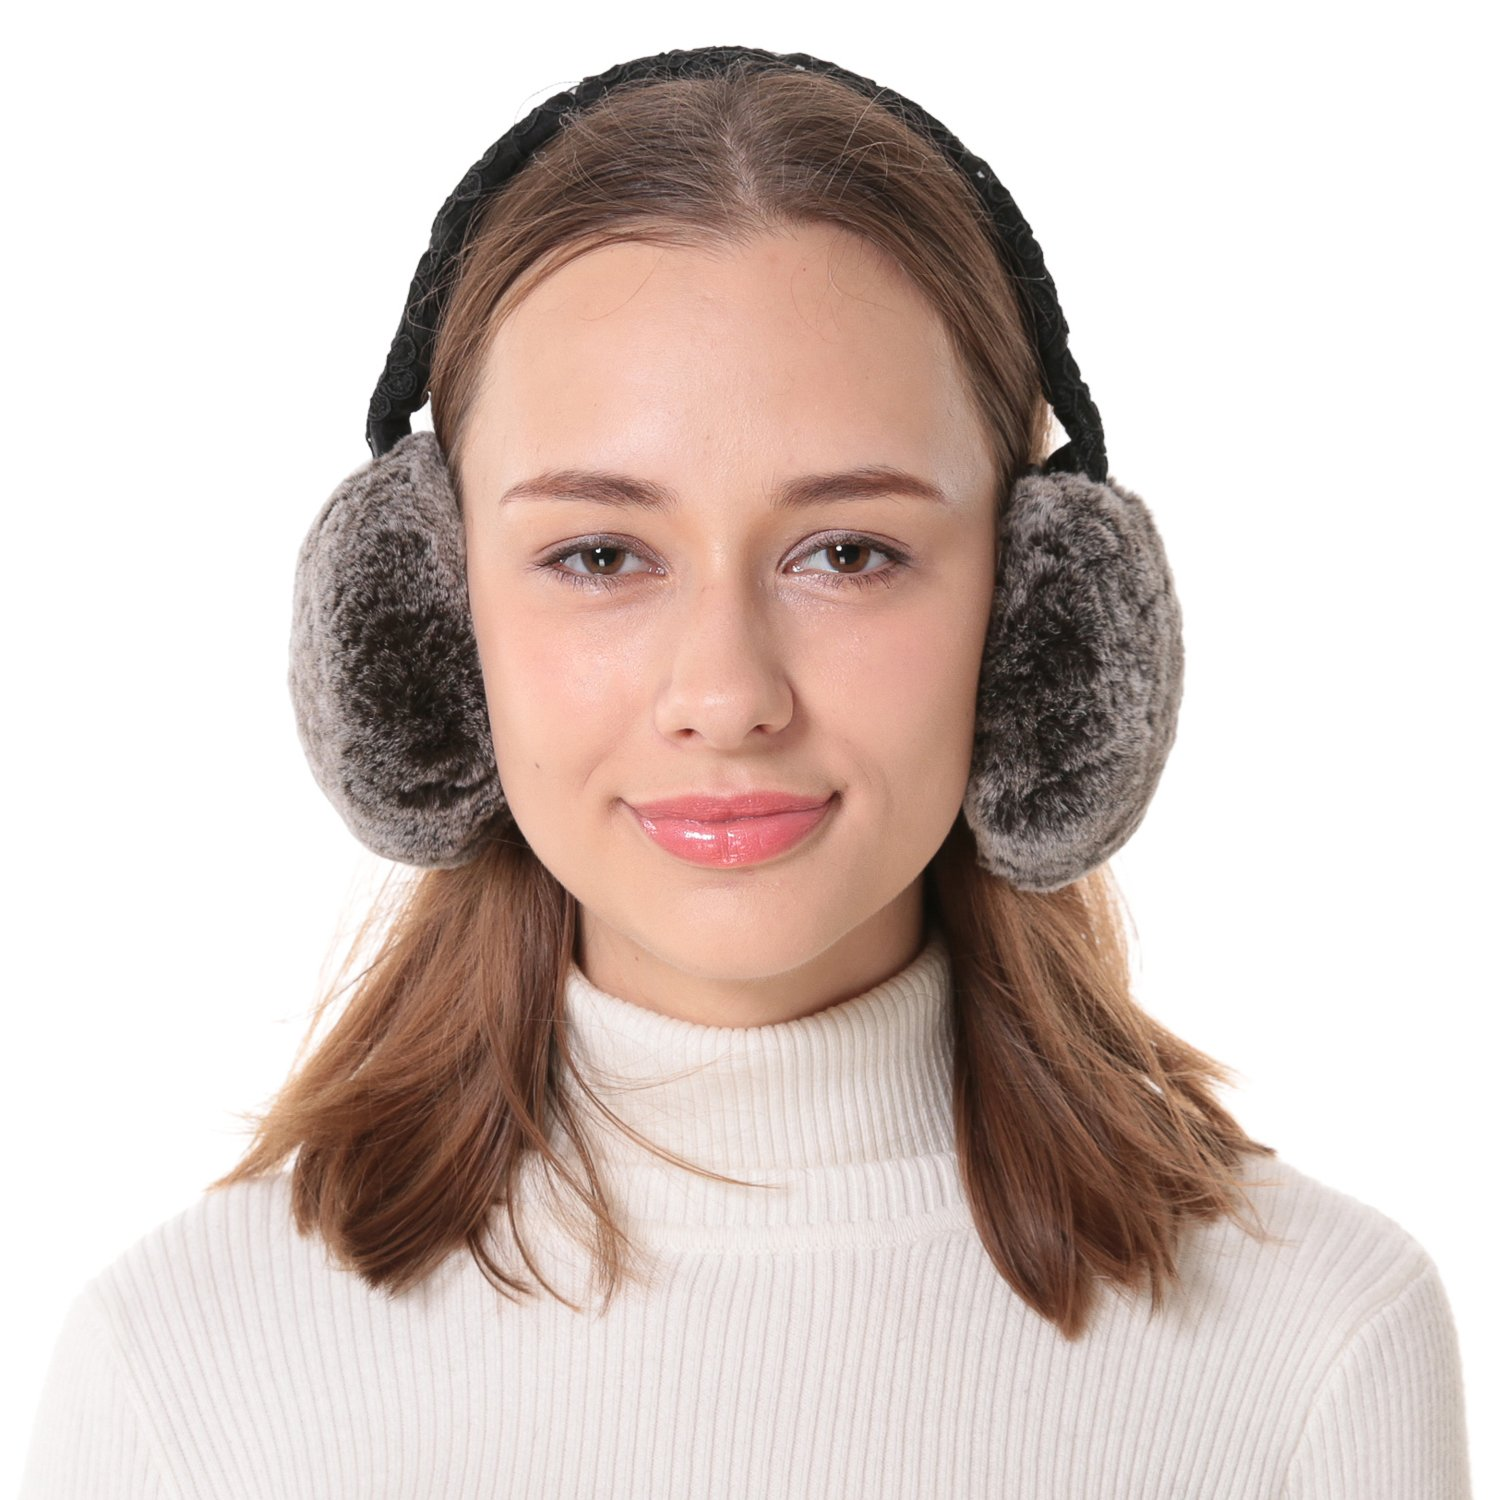 Women's Rex Rabbit Fur Embroidered Lace Band Earmuffs Brown Snow Top.